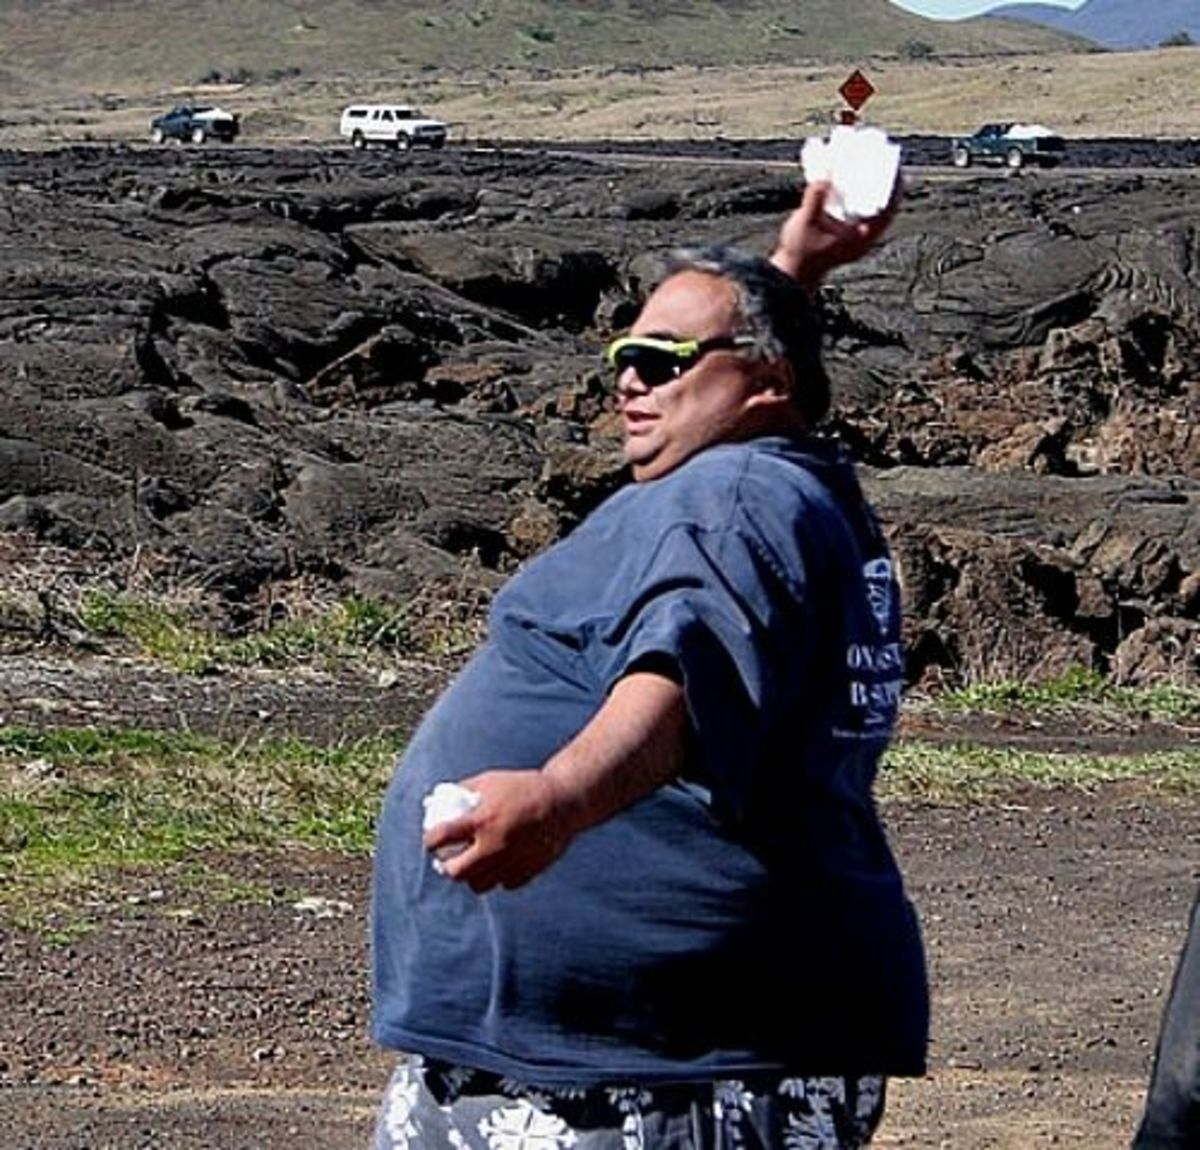 One Big Hawaiian Man Throwing a Snowball on the Beach